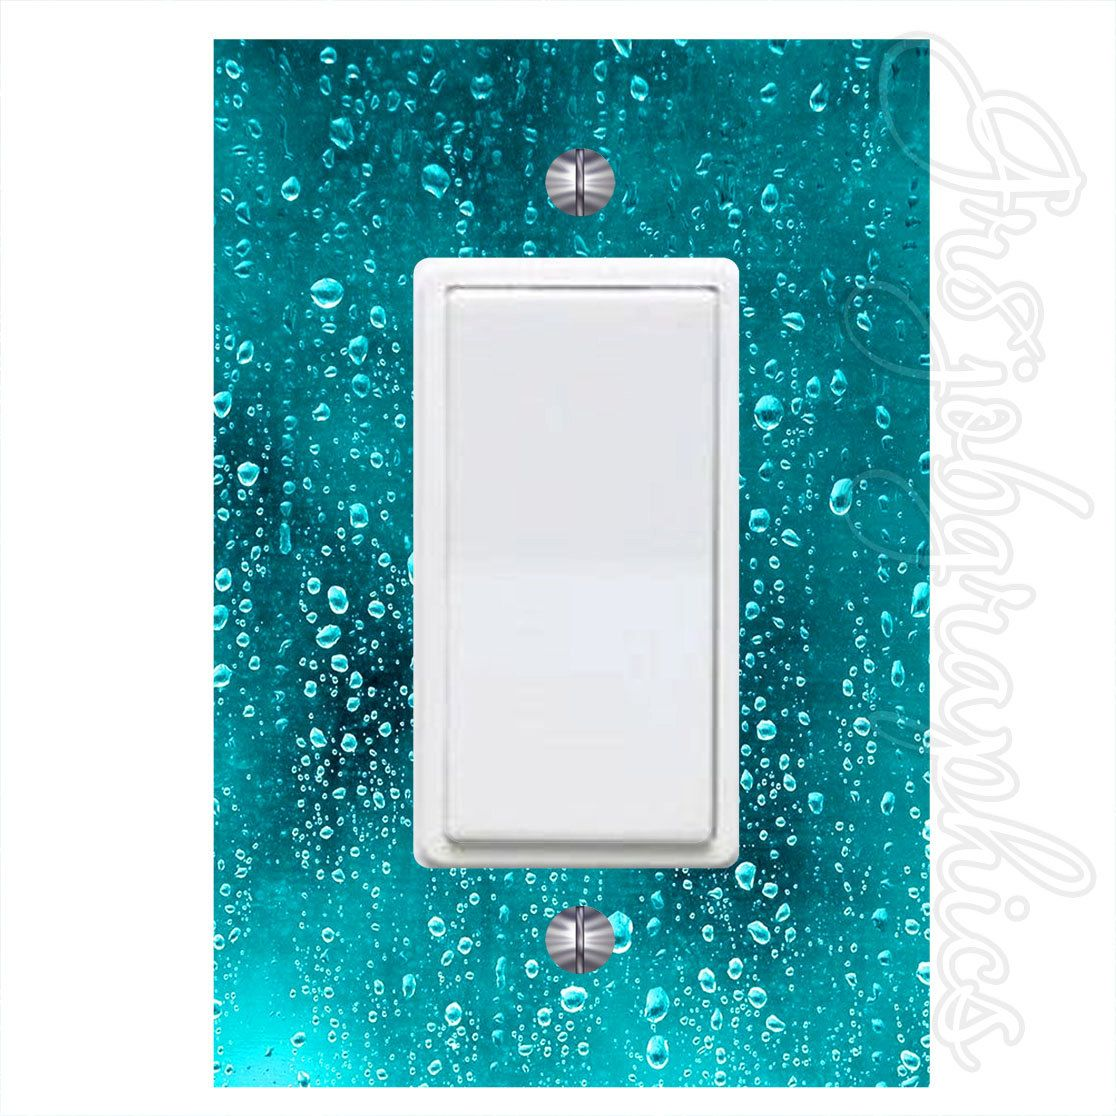 Plastic Light Switch Covers Light Switch Decal Plastic Cover Dark Water Dew Pattern Peel And